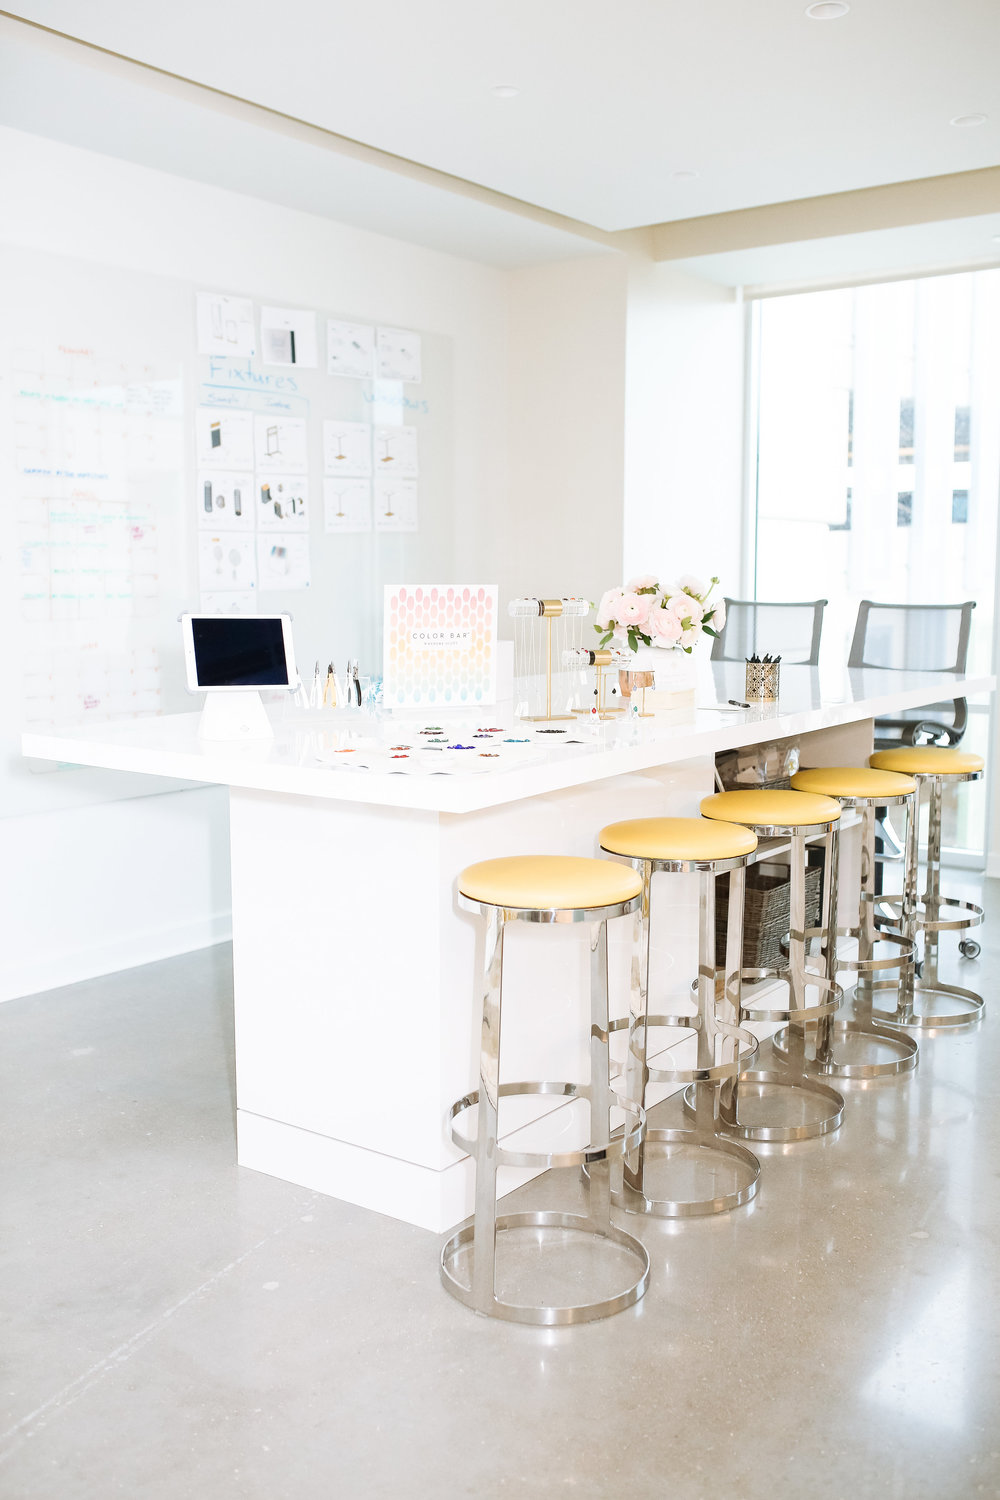 Kendra Scott Office-0075.jpg